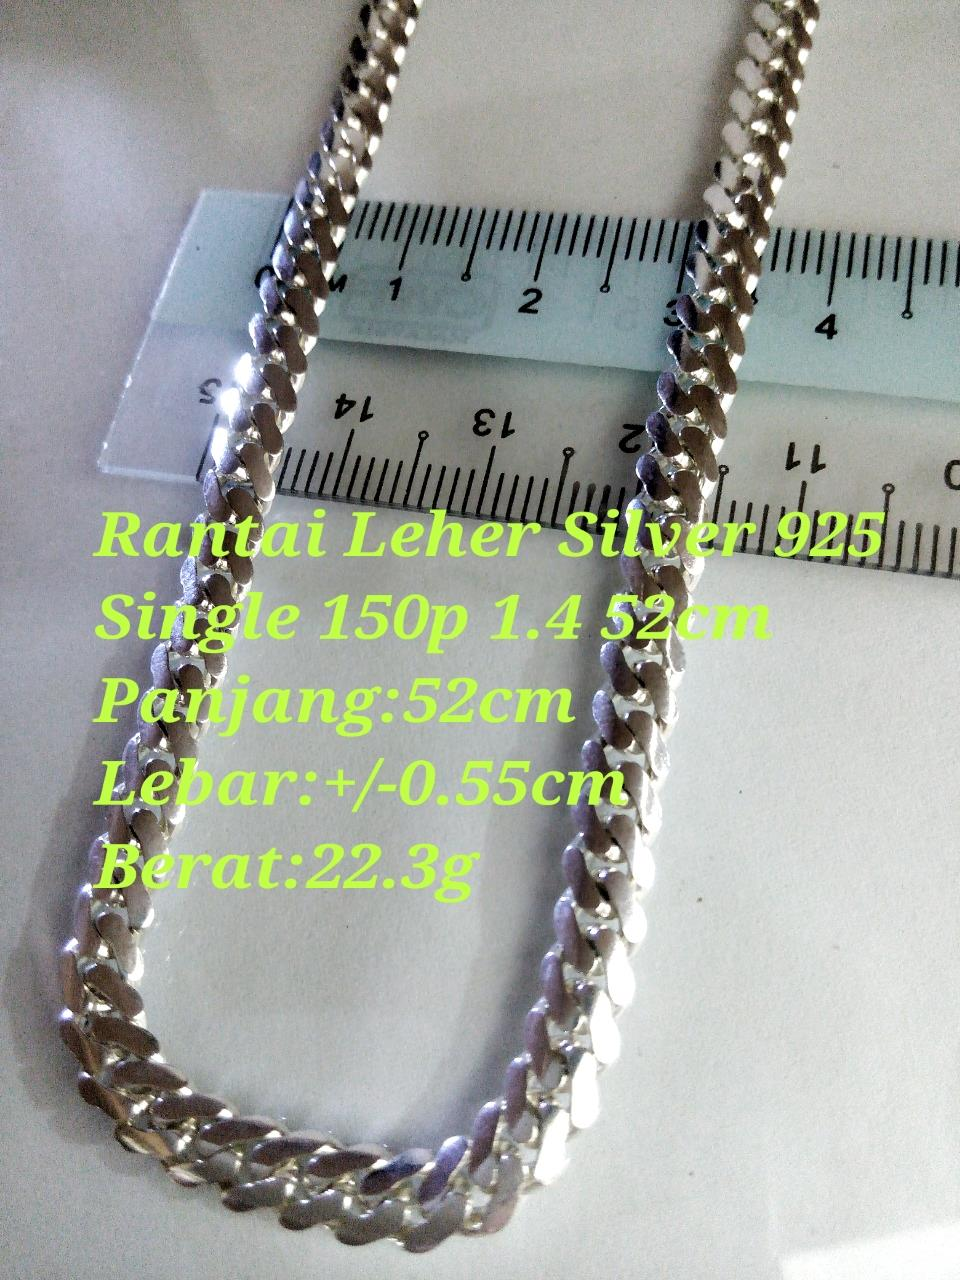 silver 925 Rantai Leher Single 150 1.4 52cm